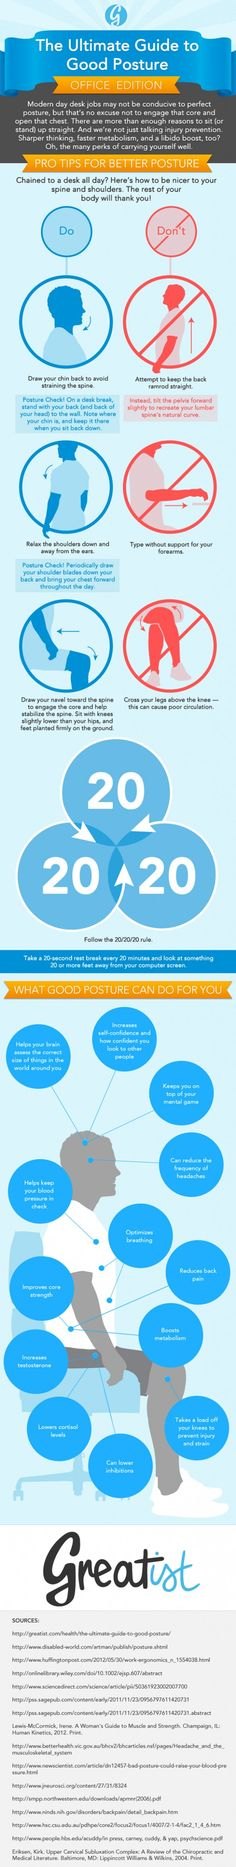 Need a posture overhaul? The right (and wrong) way to sit at your desk: